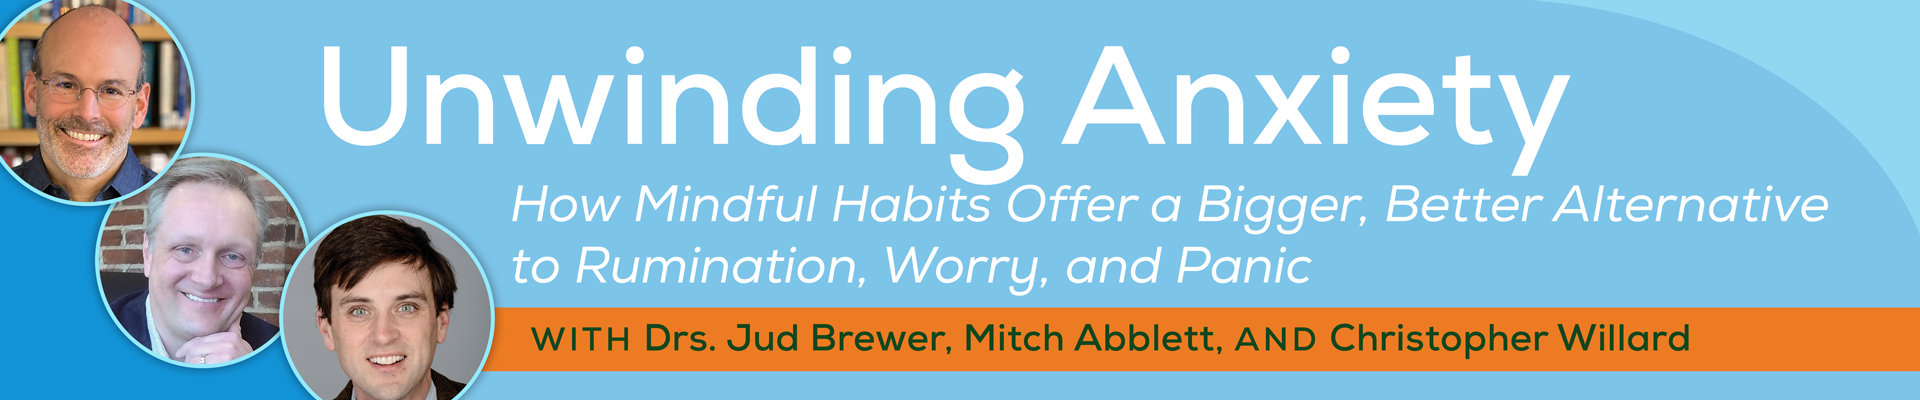 Unwinding Anxiety: How Mindful Habits Offer a Bigger, Better Alternative to Rumination, Worry, and Panic